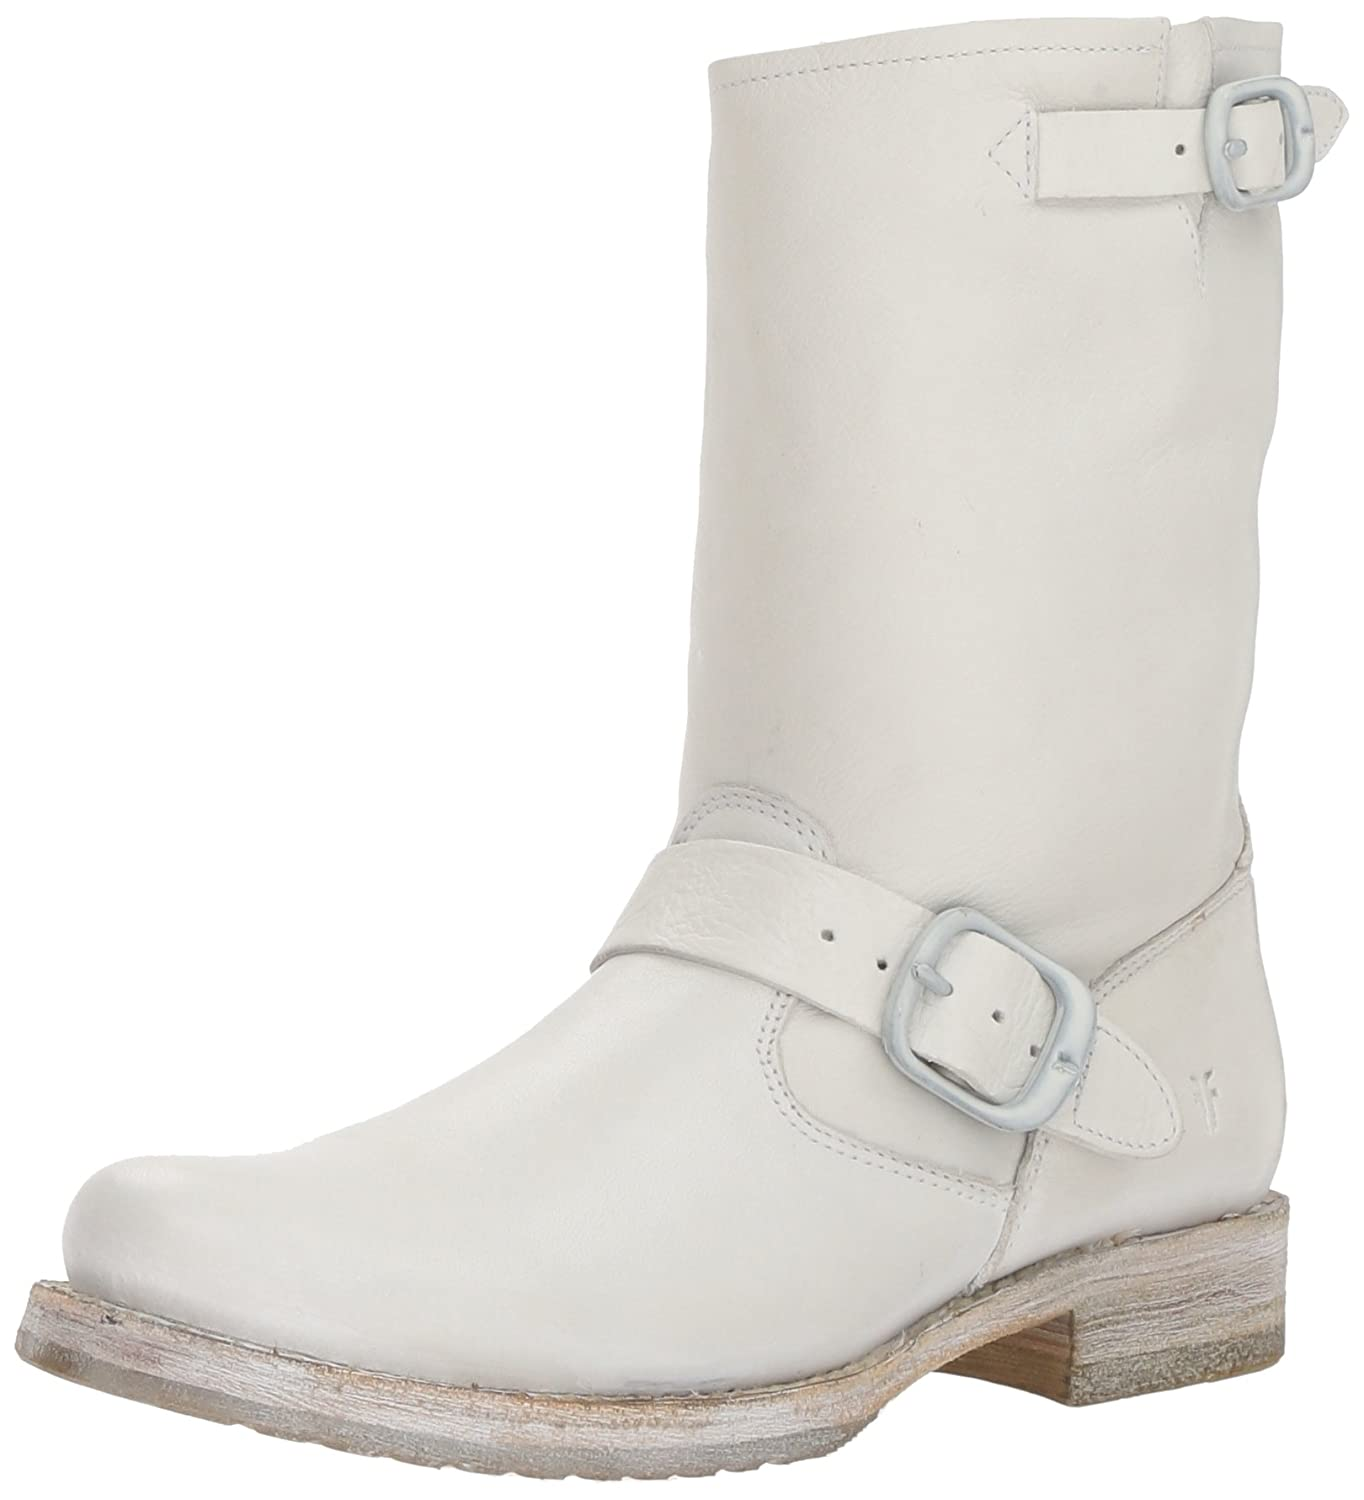 White Frye Women's Veronica Short Ankle Boot